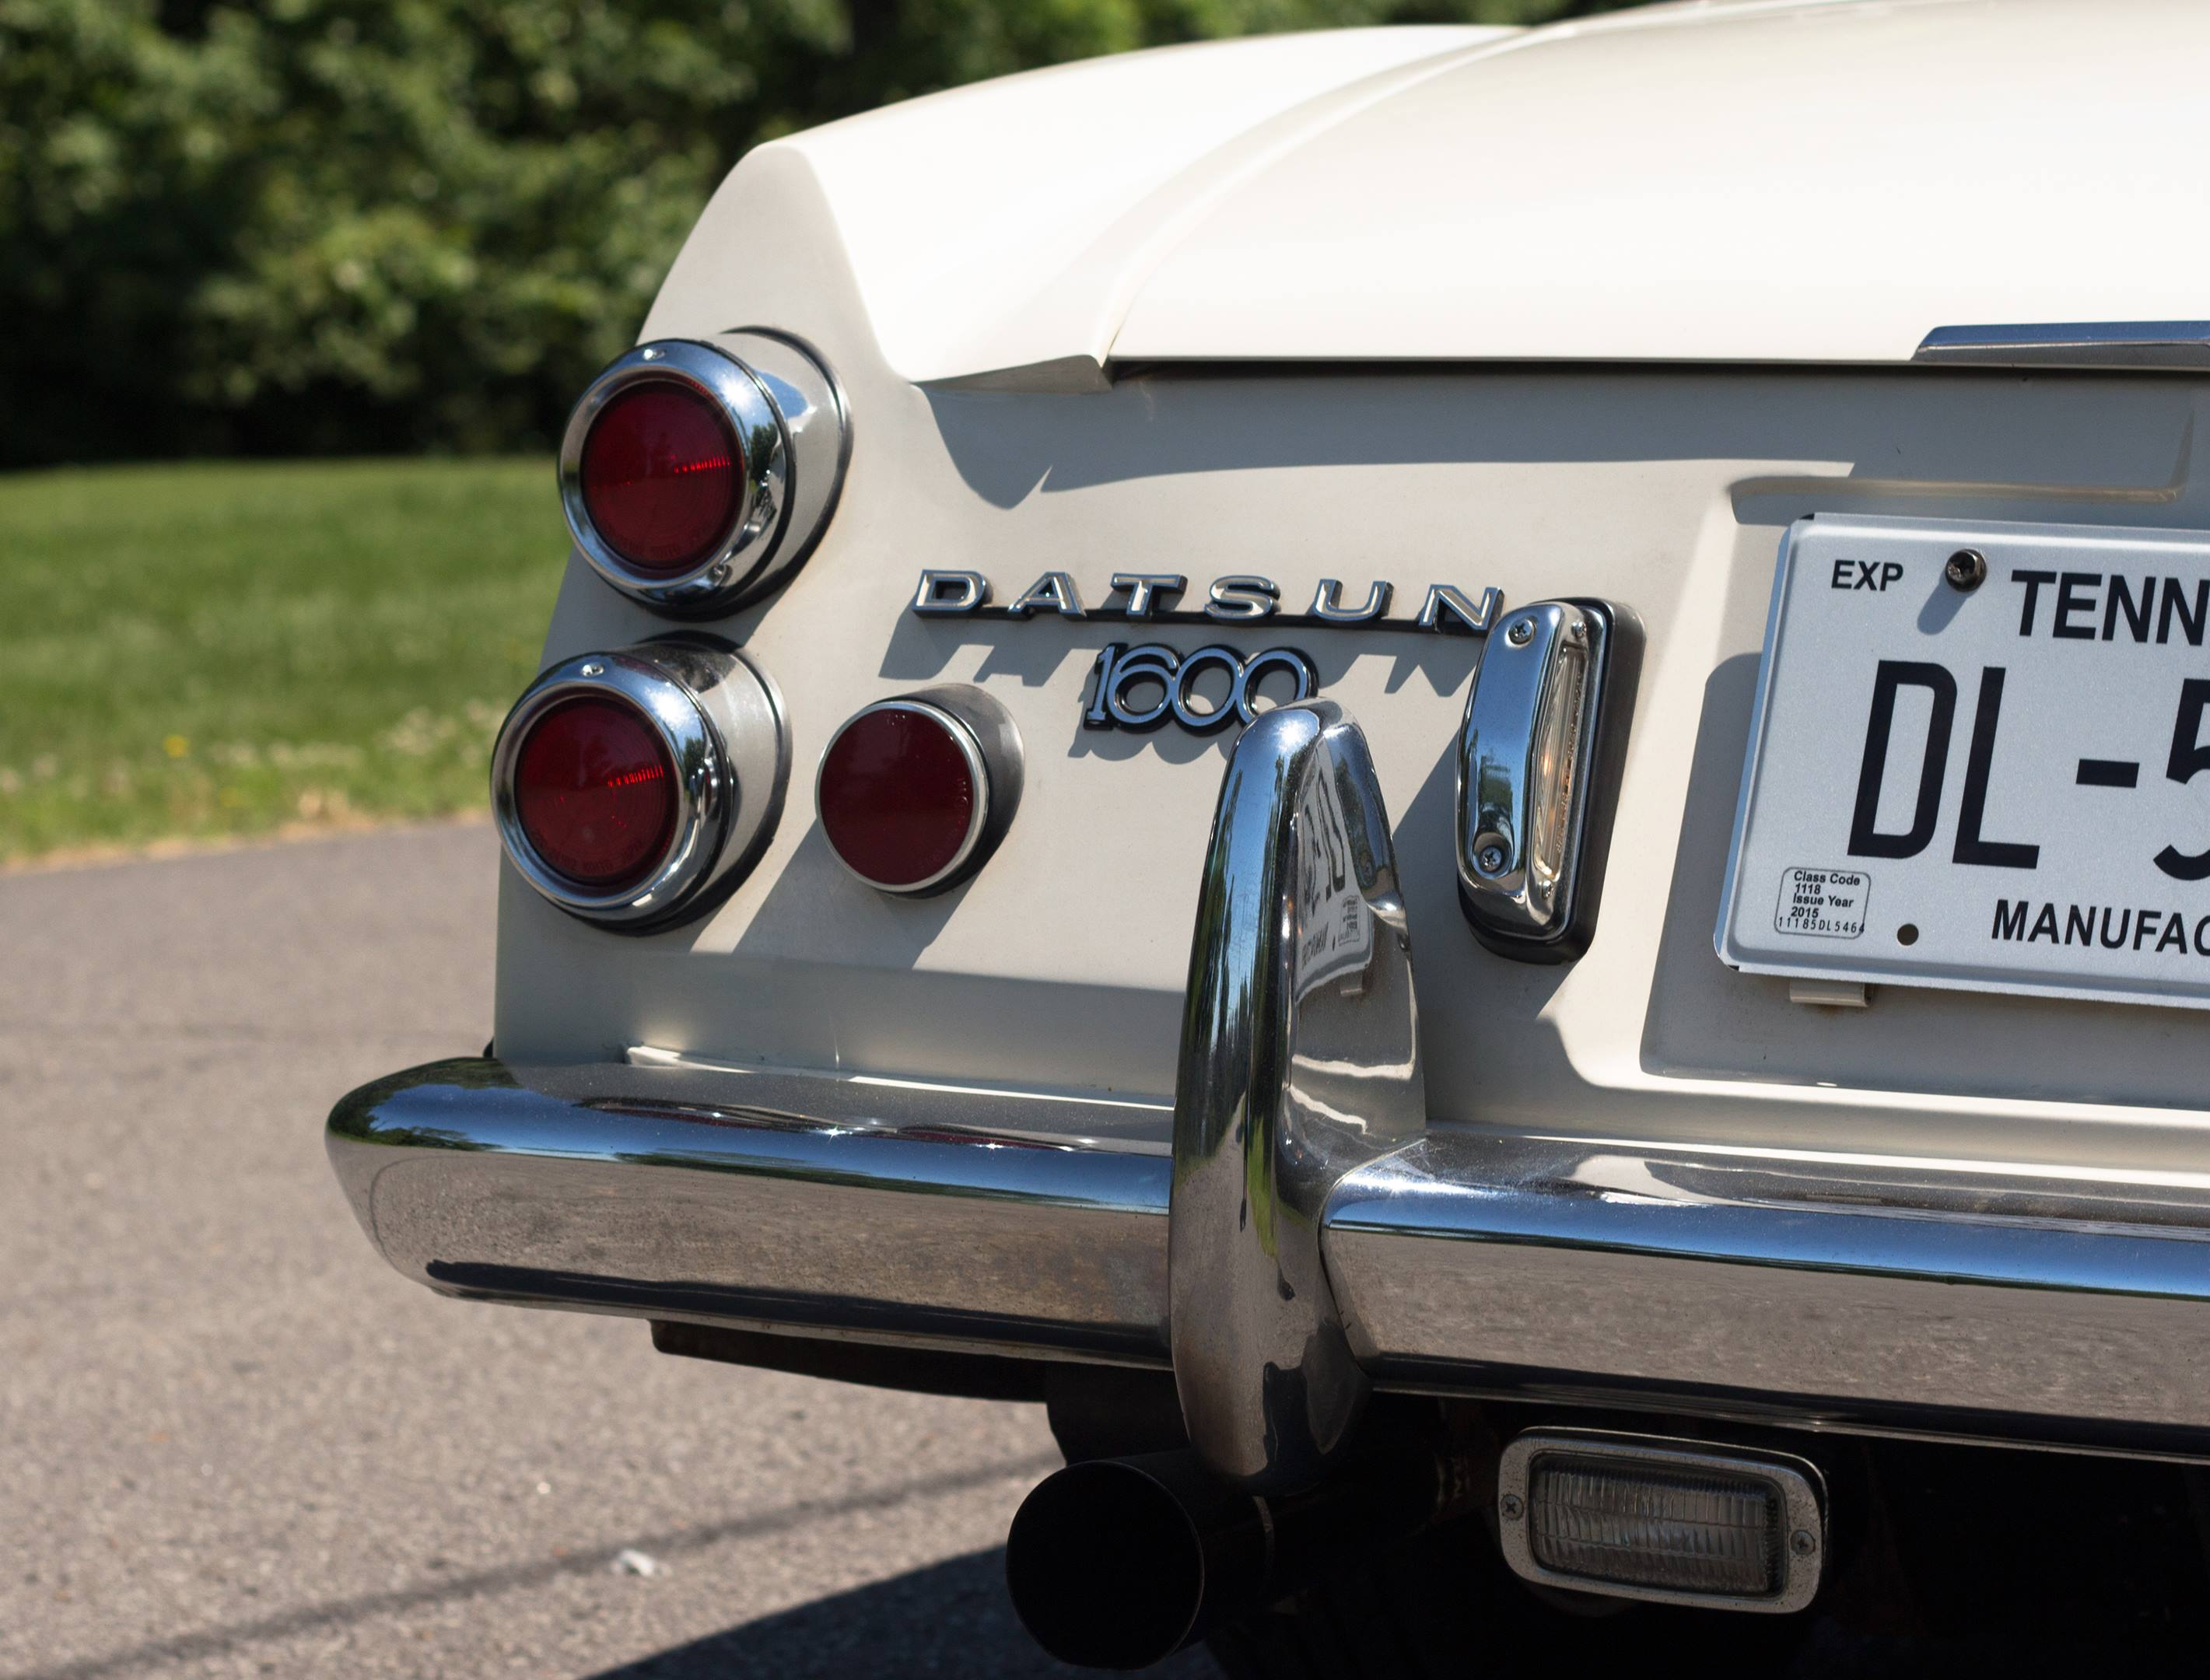 Datsun Fairlady tail light detail